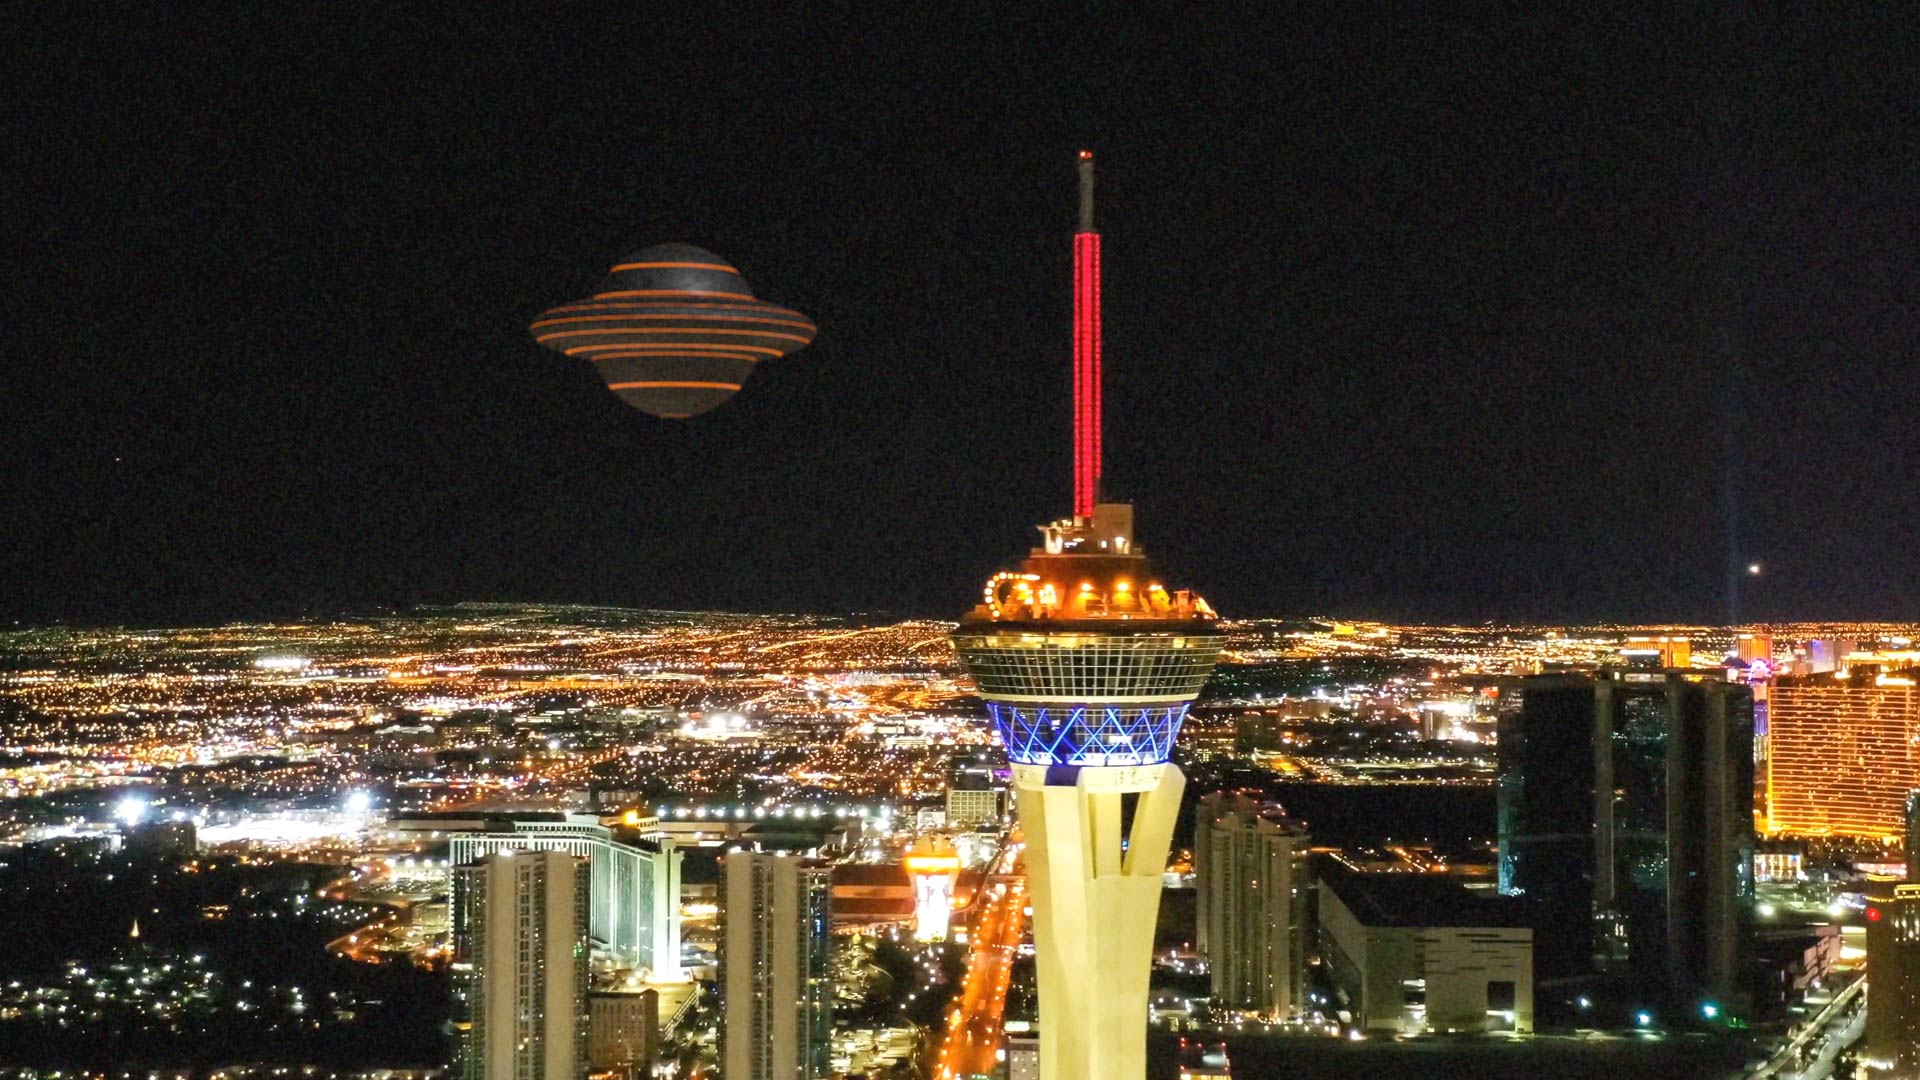 UFO Sightings 2020 Drone Chases UFO